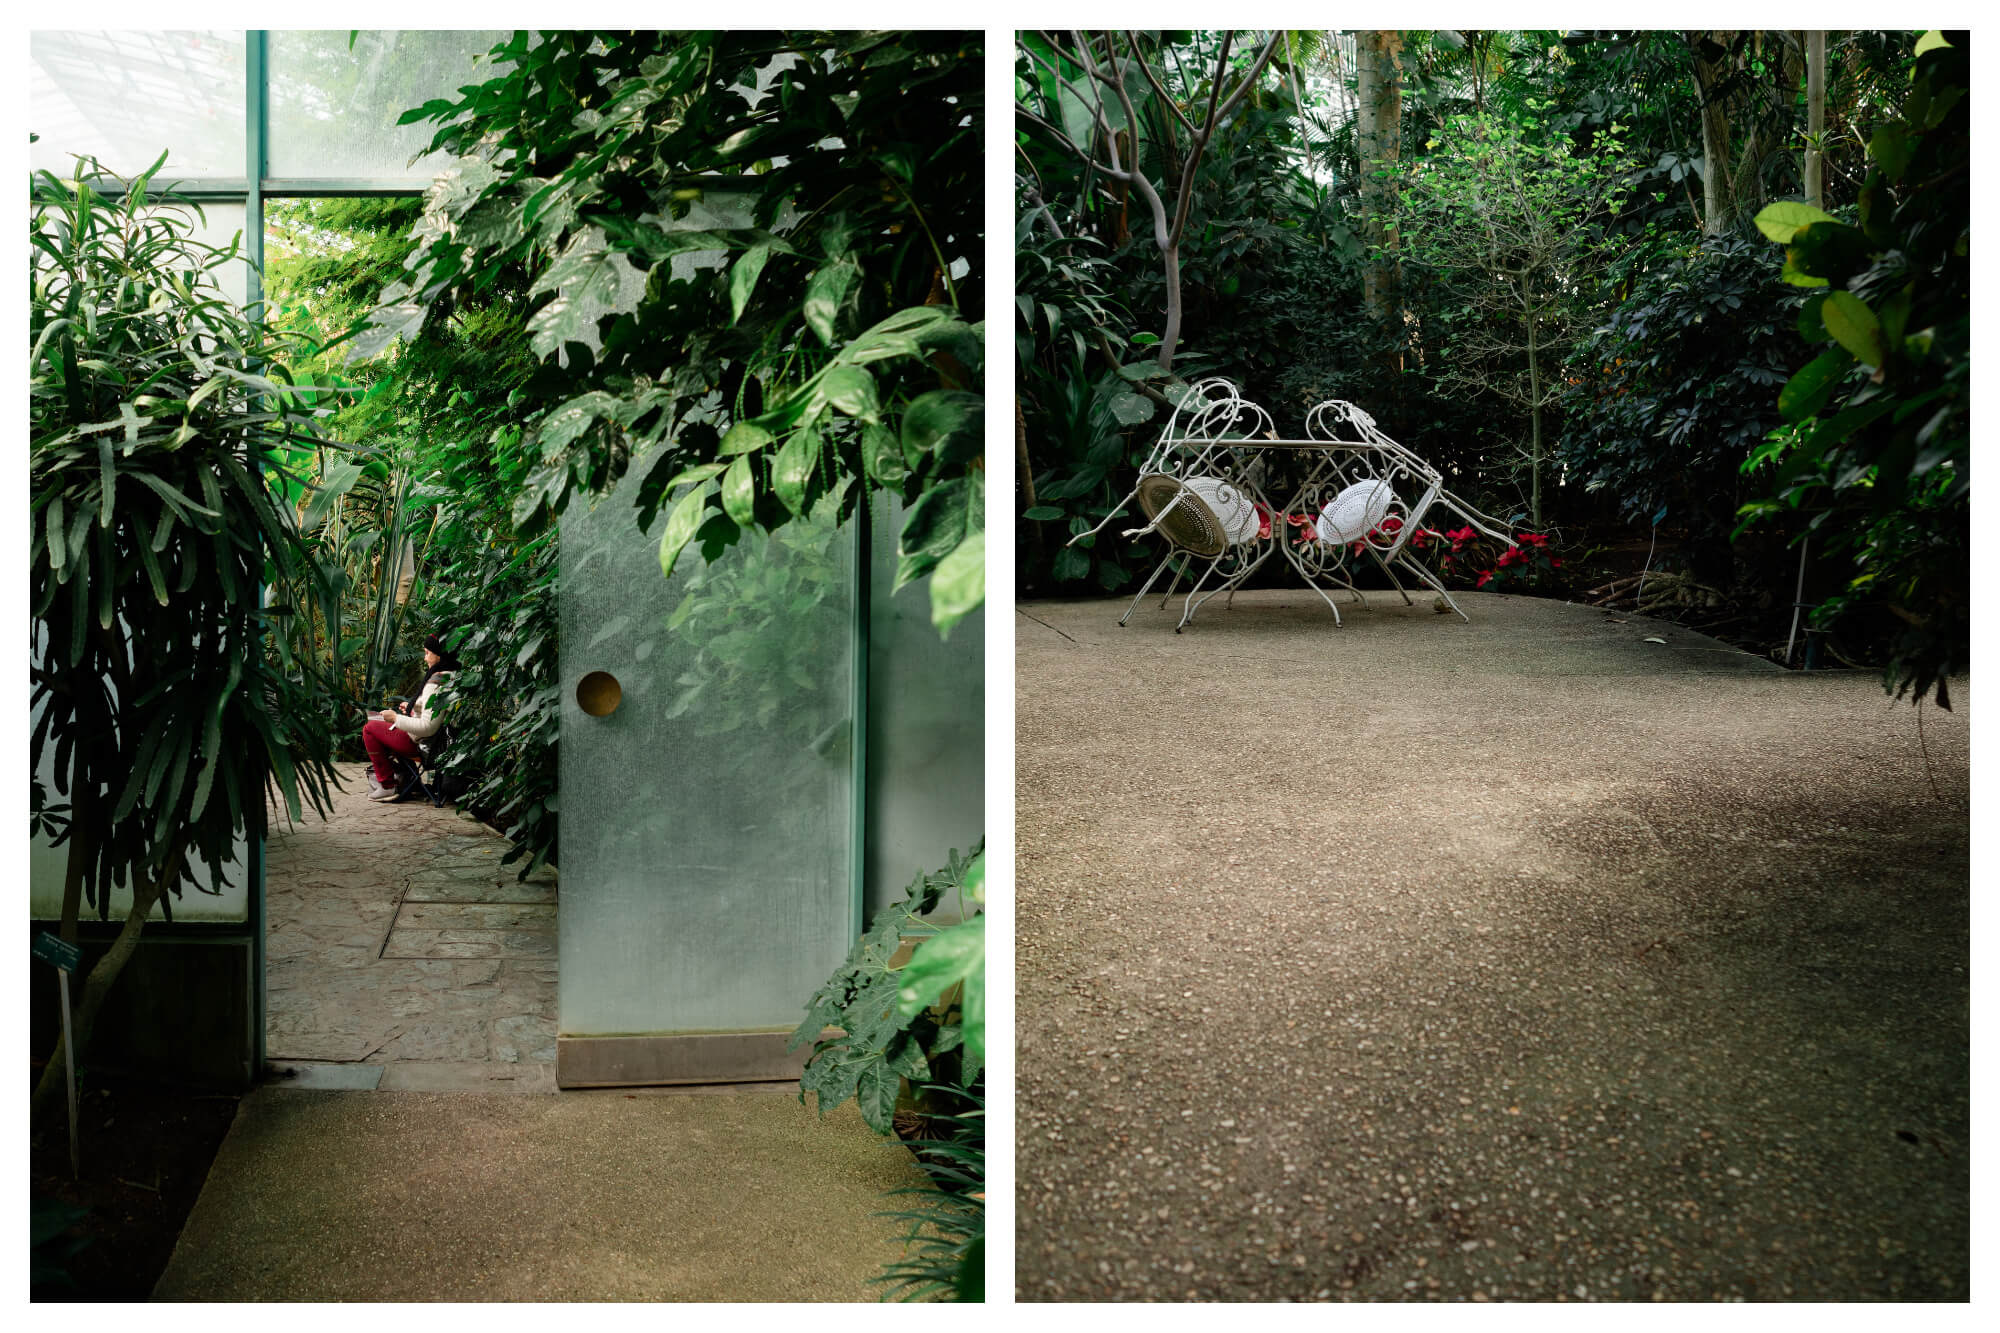 On left: An artist sits among the leaves of the Serres d'Auteuil, in Paris' 16th arrondissement, sketching. On right: Empty chairs are propped up on their table on the patio in the main greenhouse of the Serres d'Auteuil, waiting for a visitor to come sit with their snack.